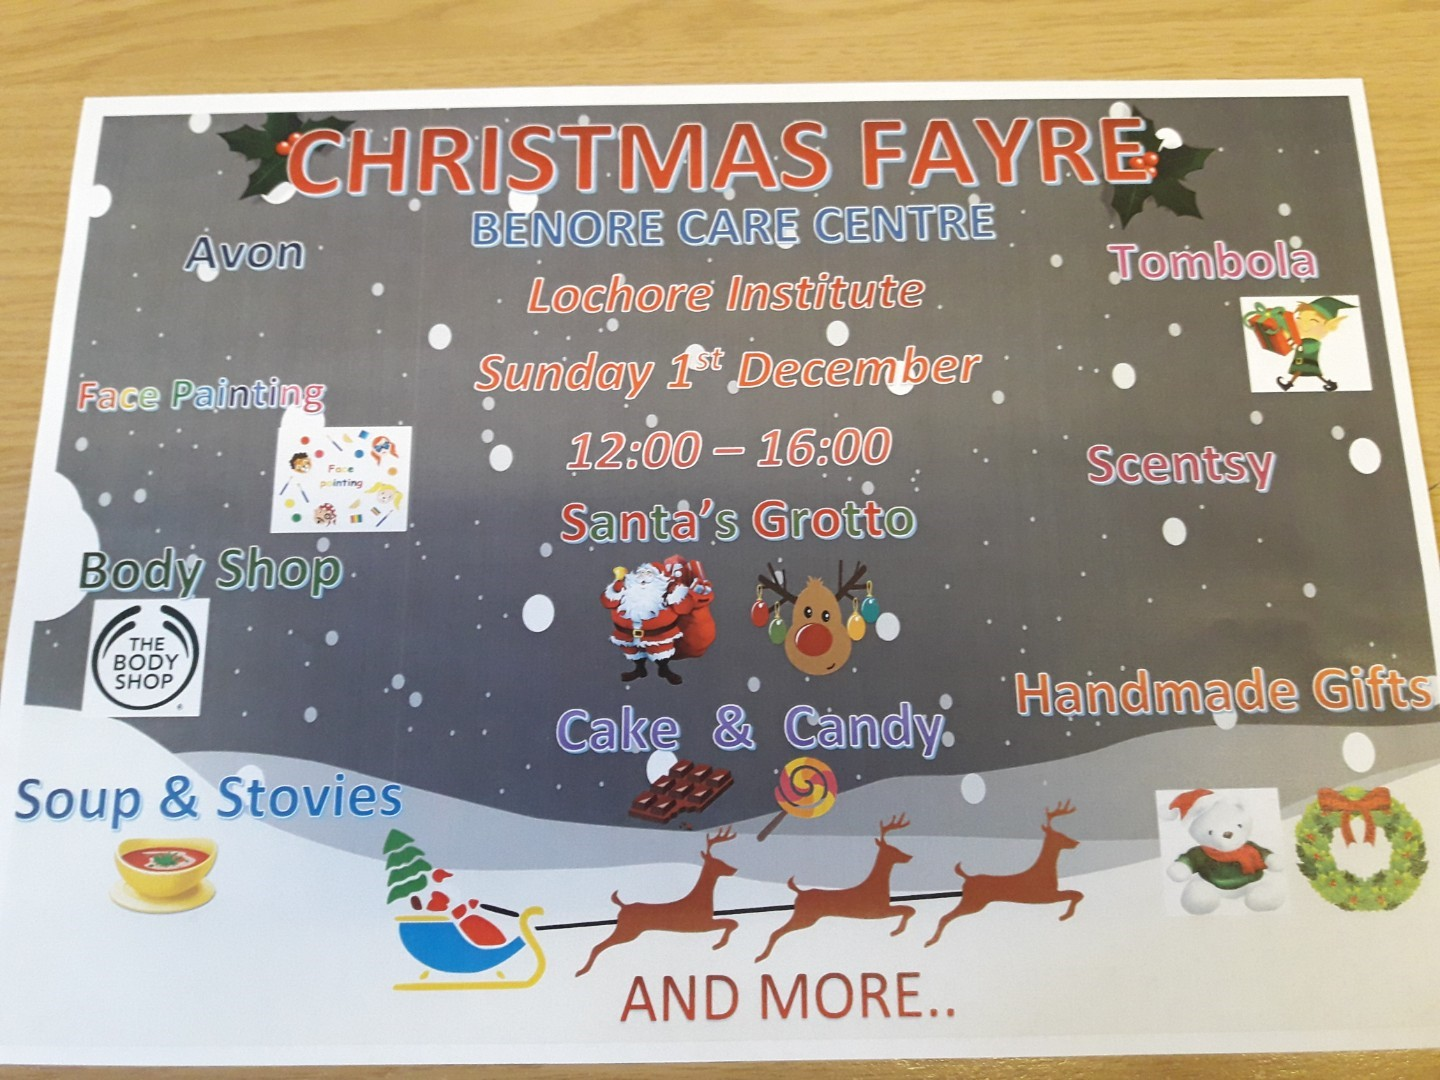 Benore Care Centre Christmas Fayre